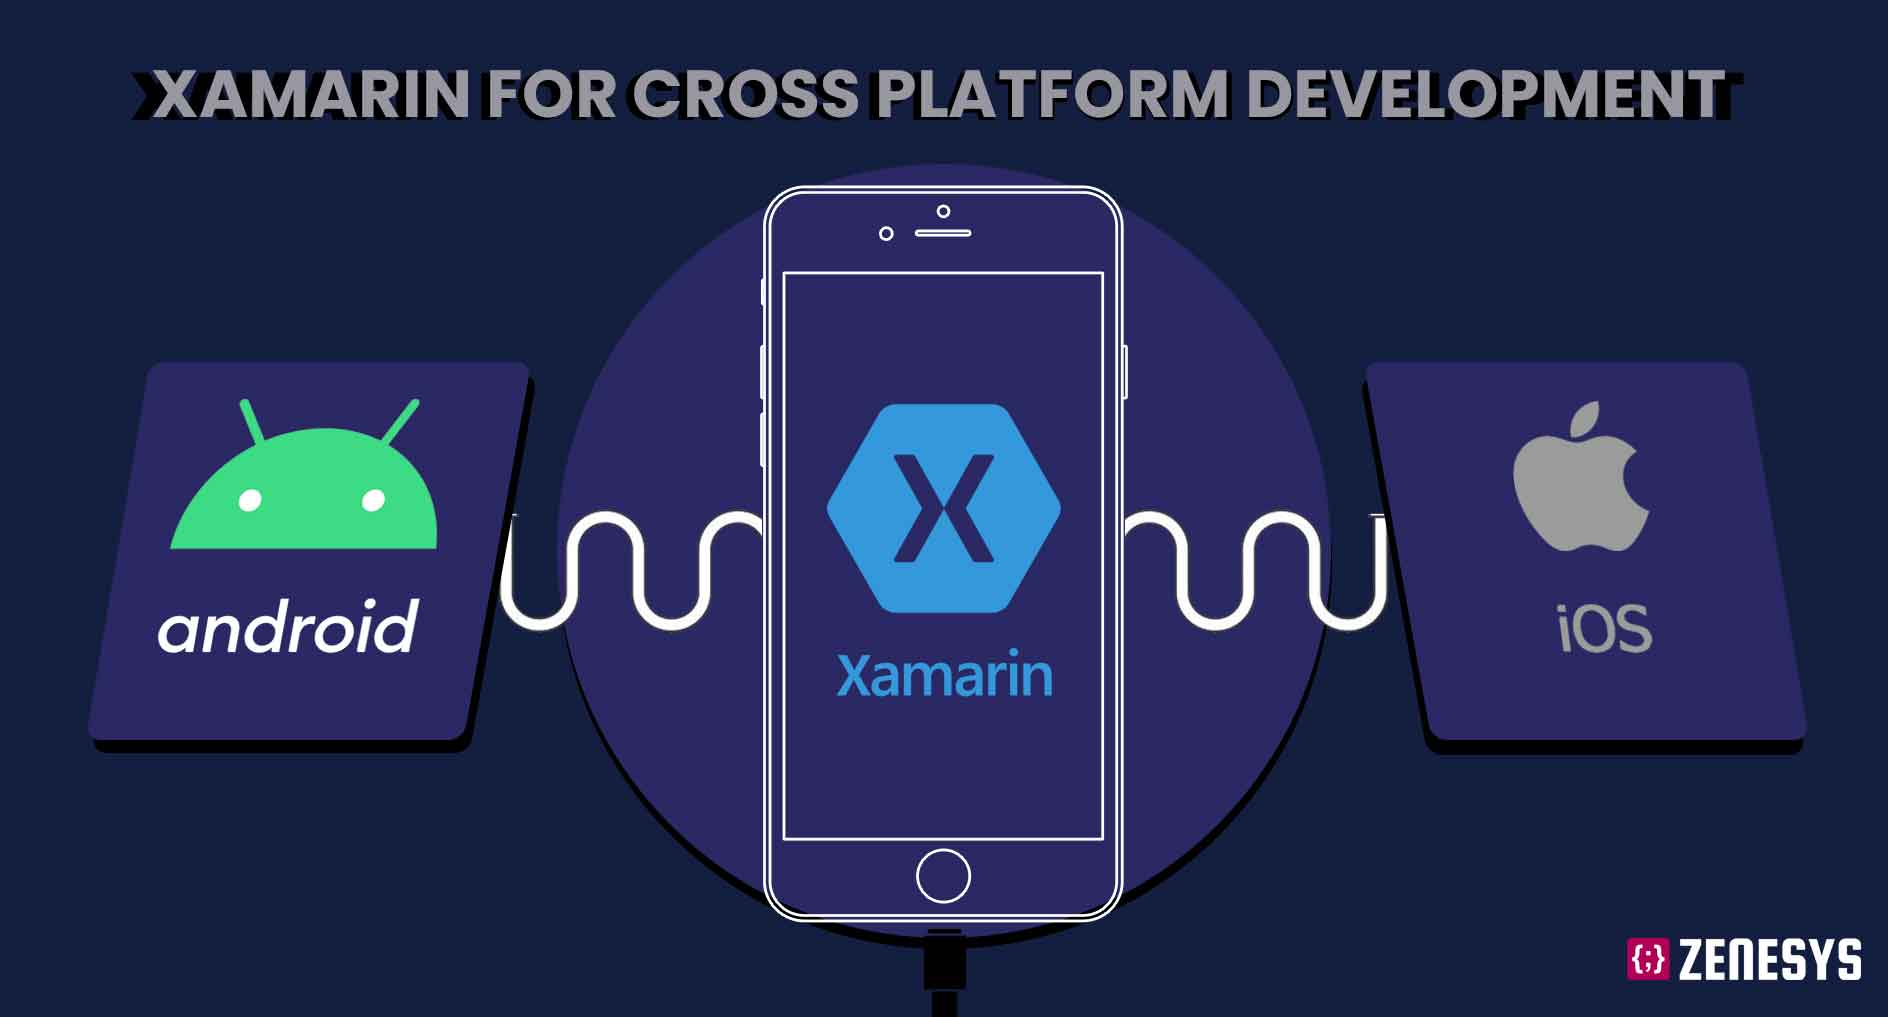 Top 10 reasons to choose Xamarin for Cross Platform Development